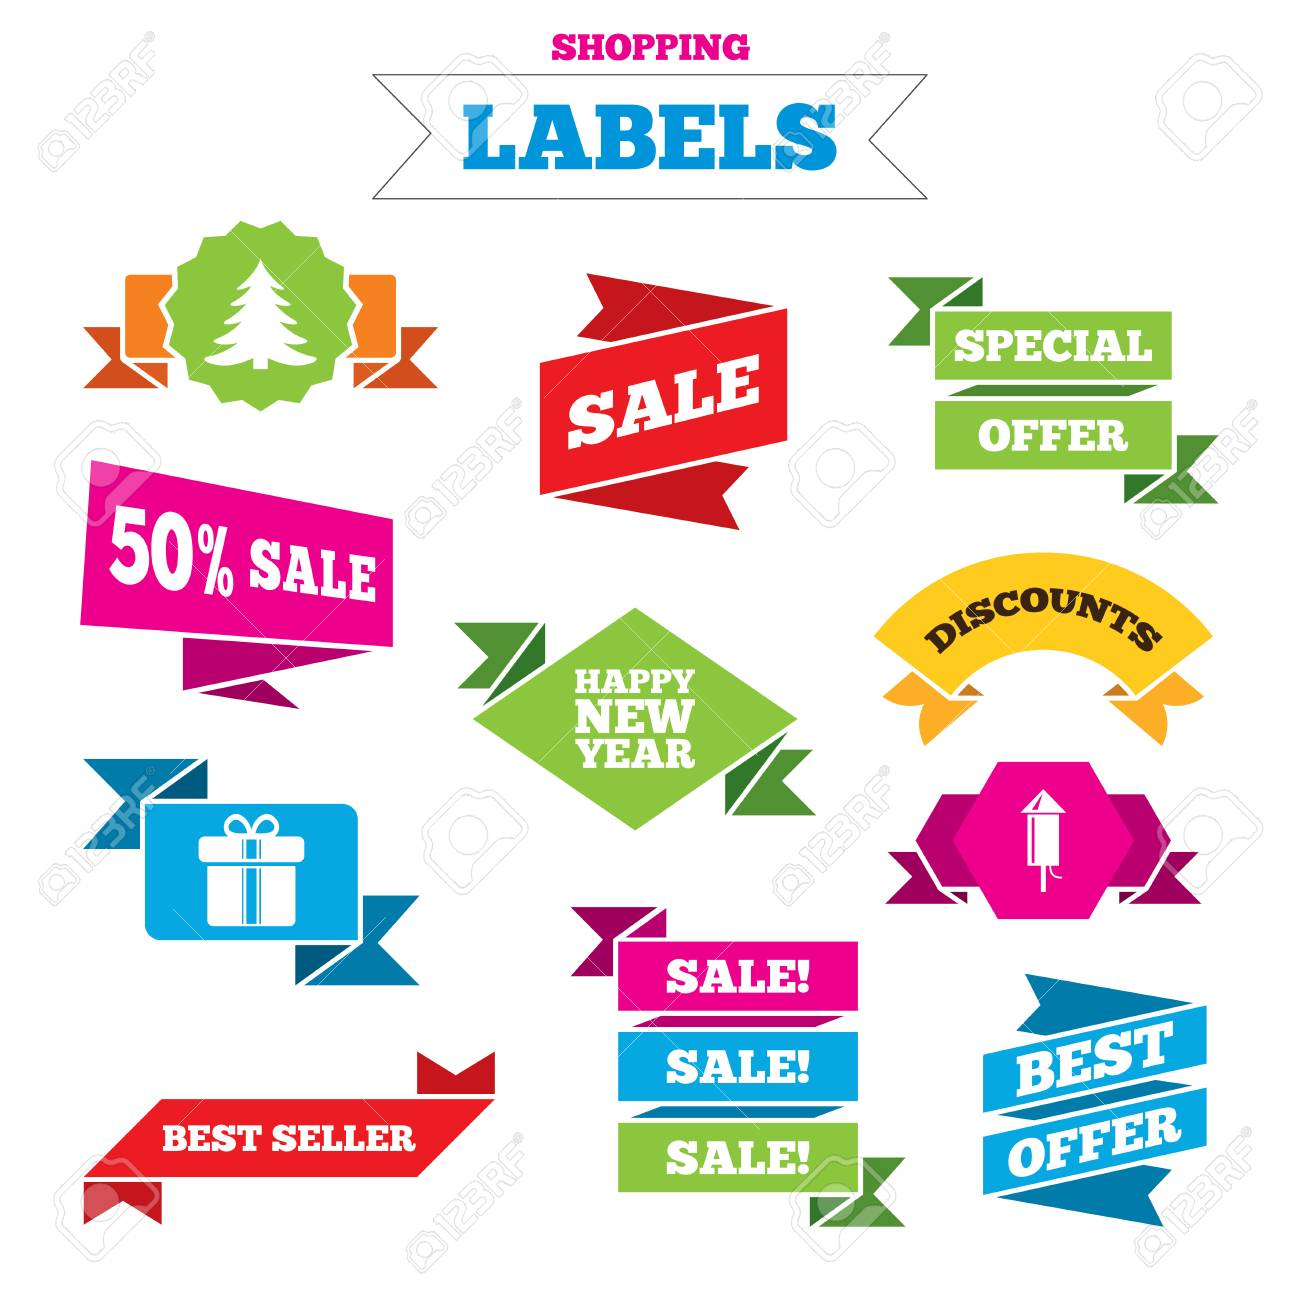 sale shopping labels happy new year icon christmas tree and gift box signs